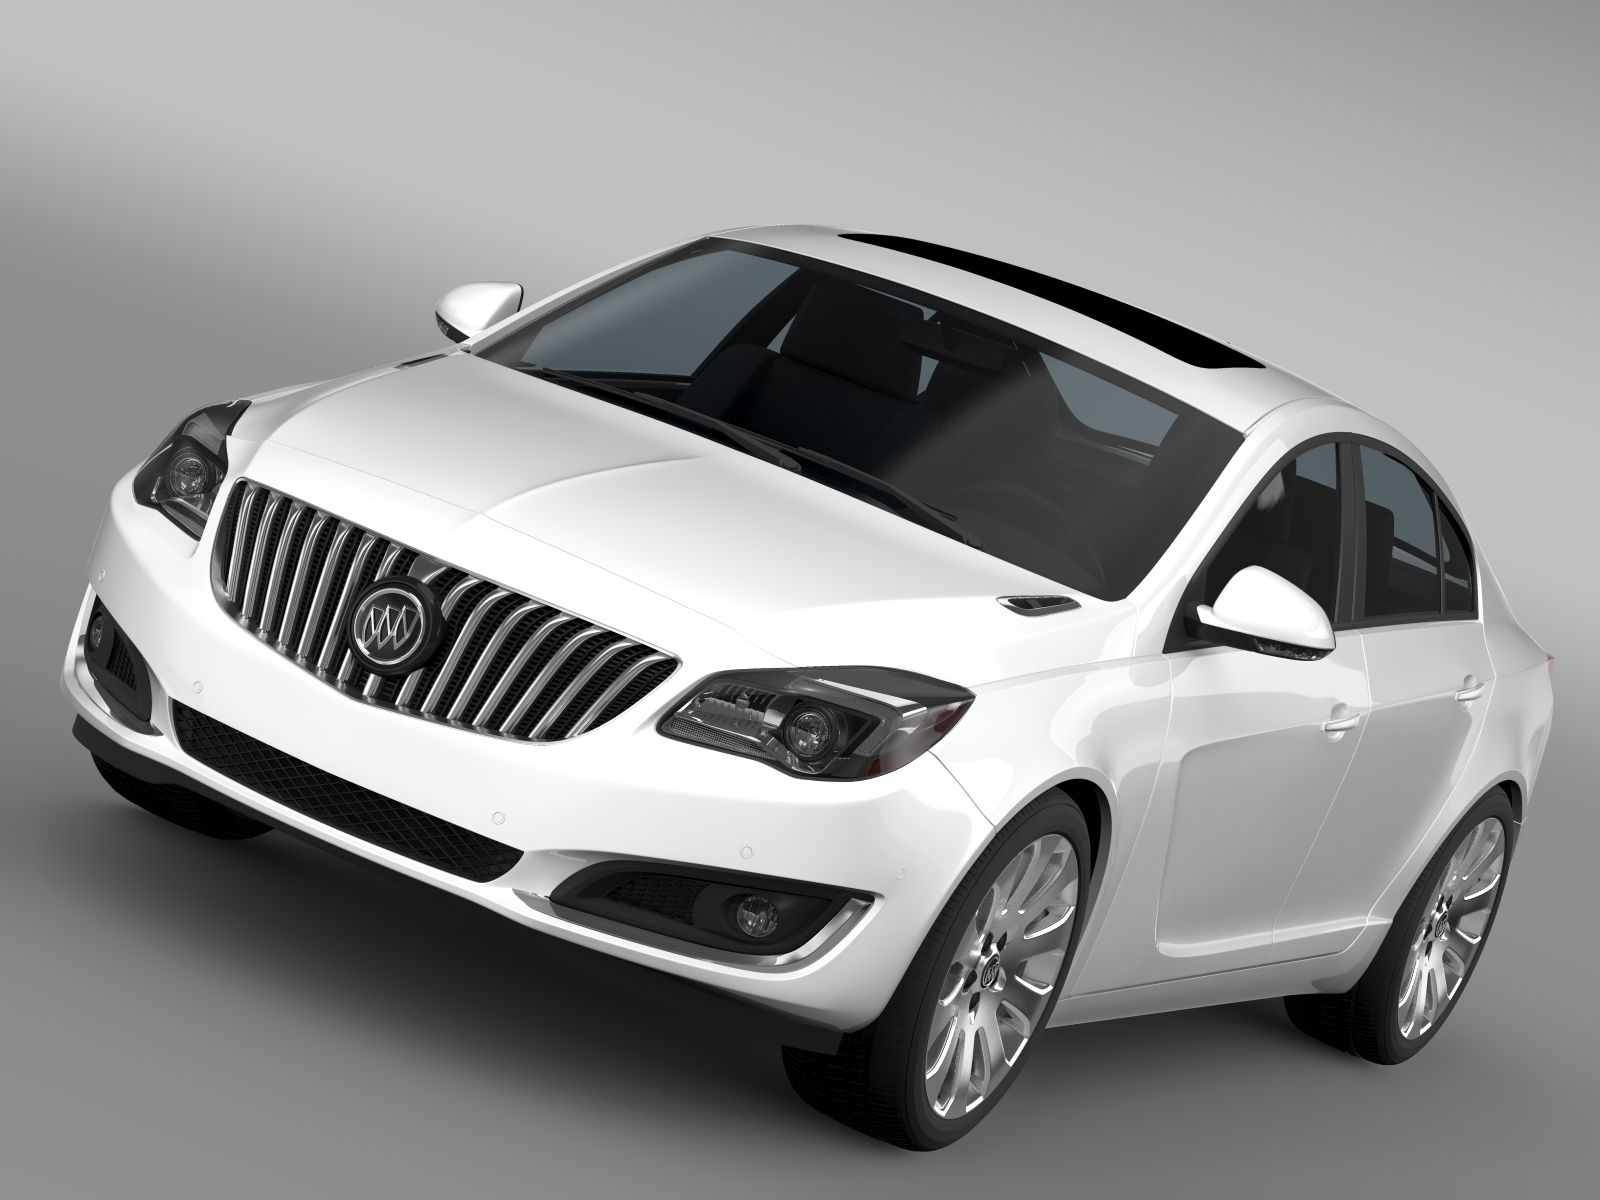 buick regal flexfuel model 2015 3d 3ds max fbx c4d ar gyfer yr hrc xsi obj